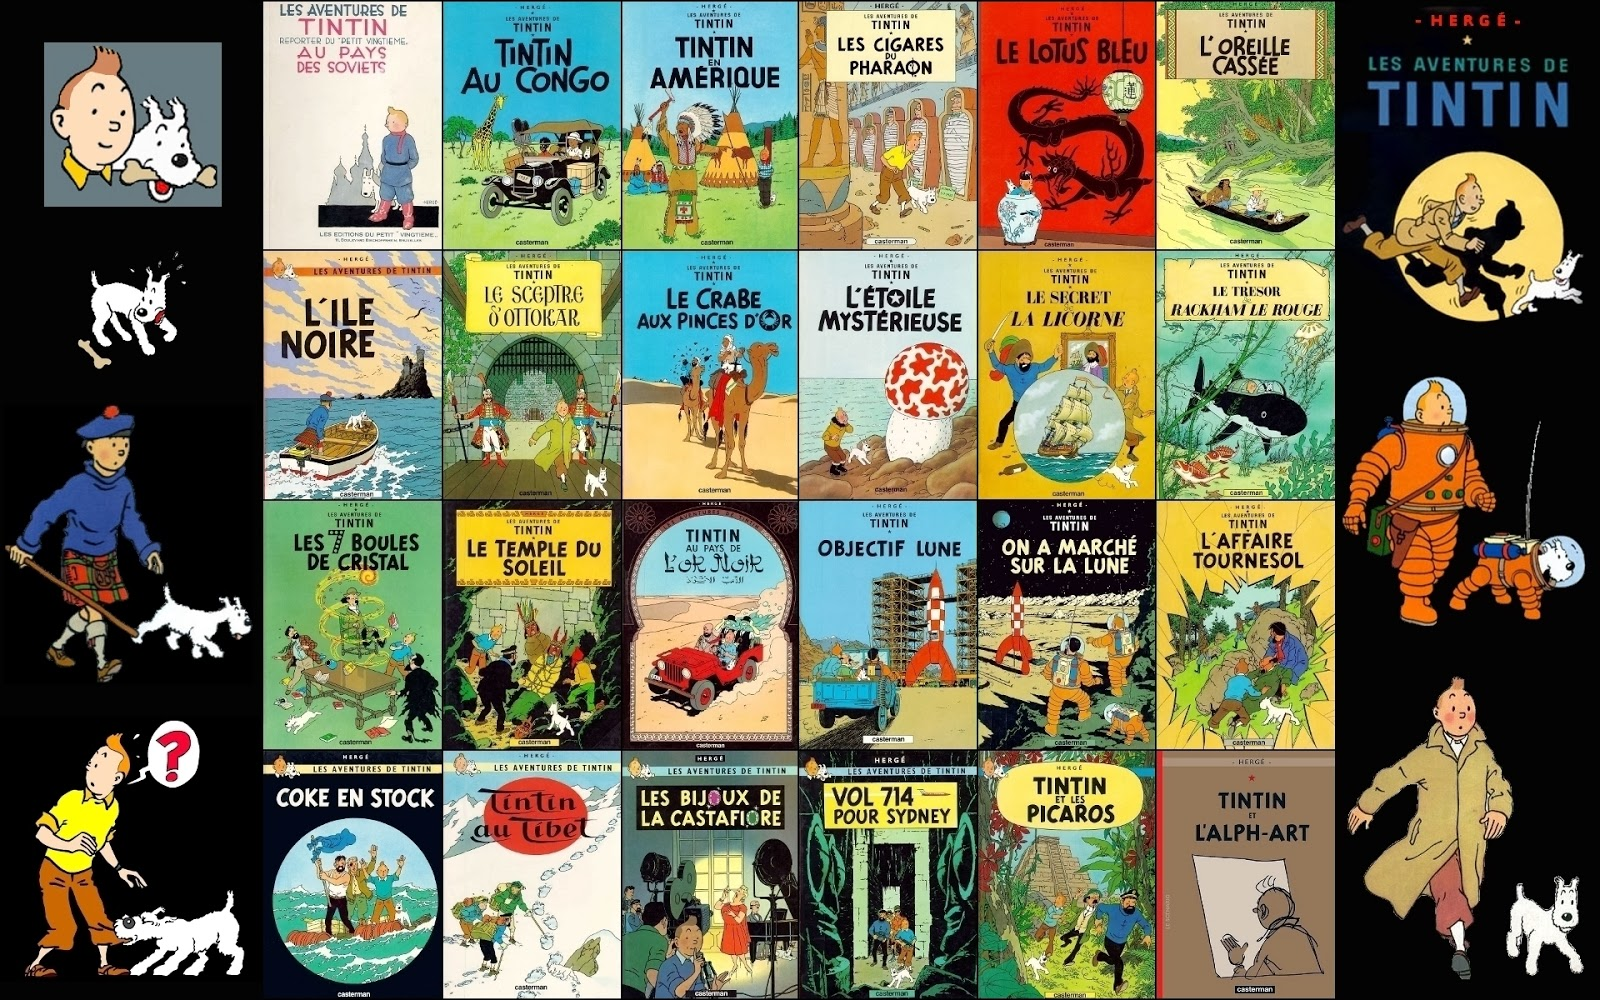 The New Cinema: THE ADVENTURES OF TINTIN TV SERIES AND MOVIE COLLECTION